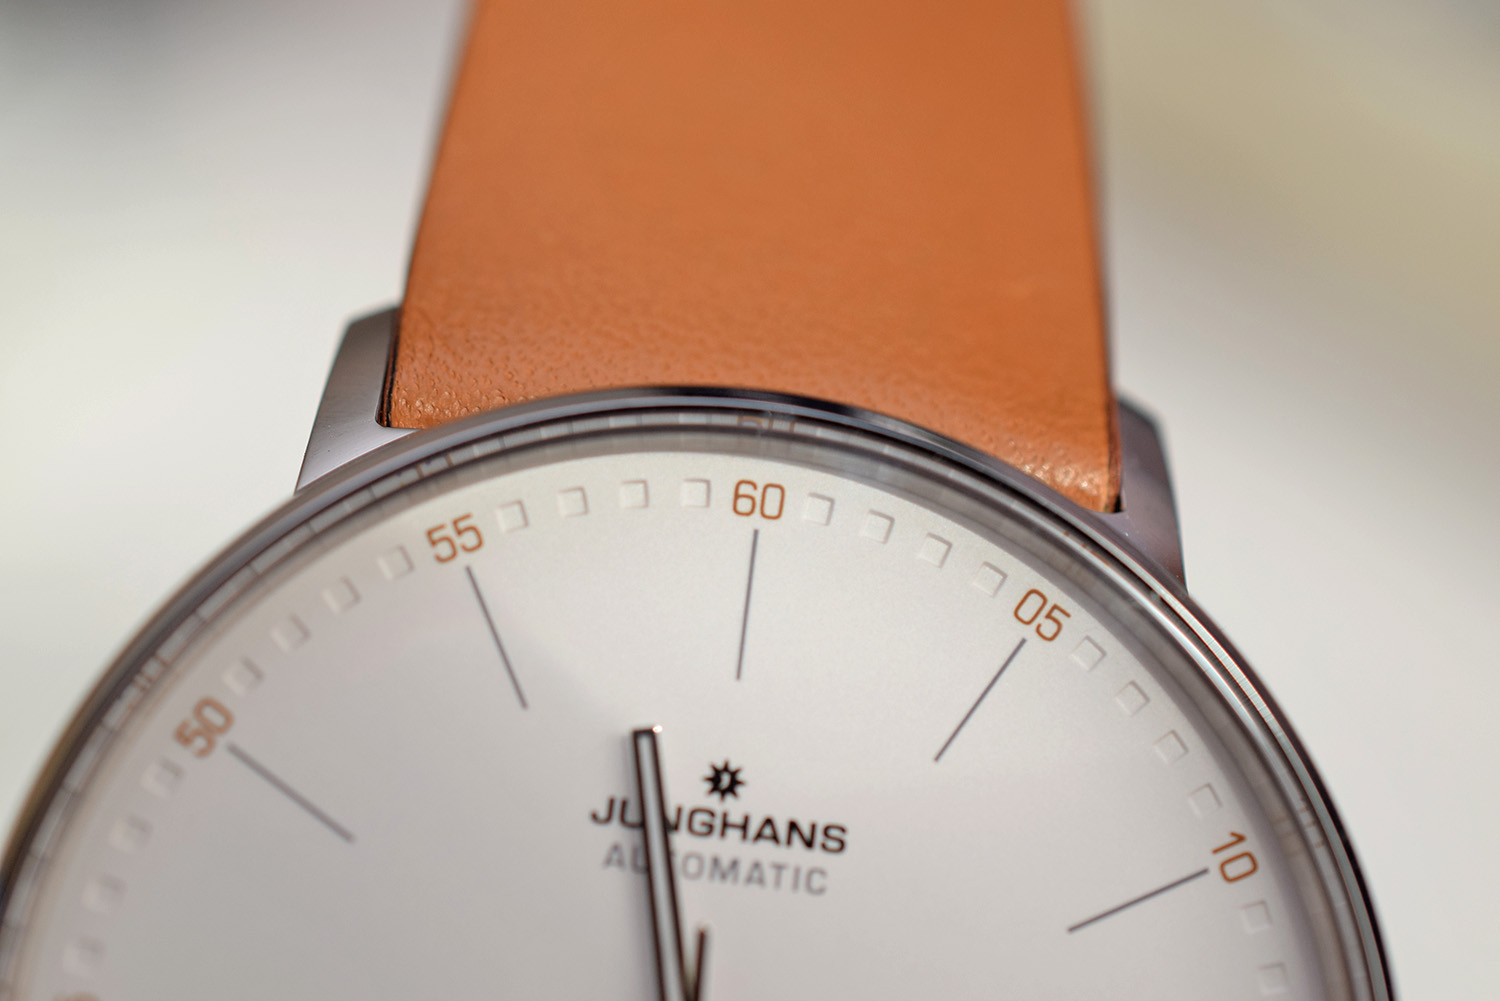 Junghans Form A Automatic Baselworld 2017